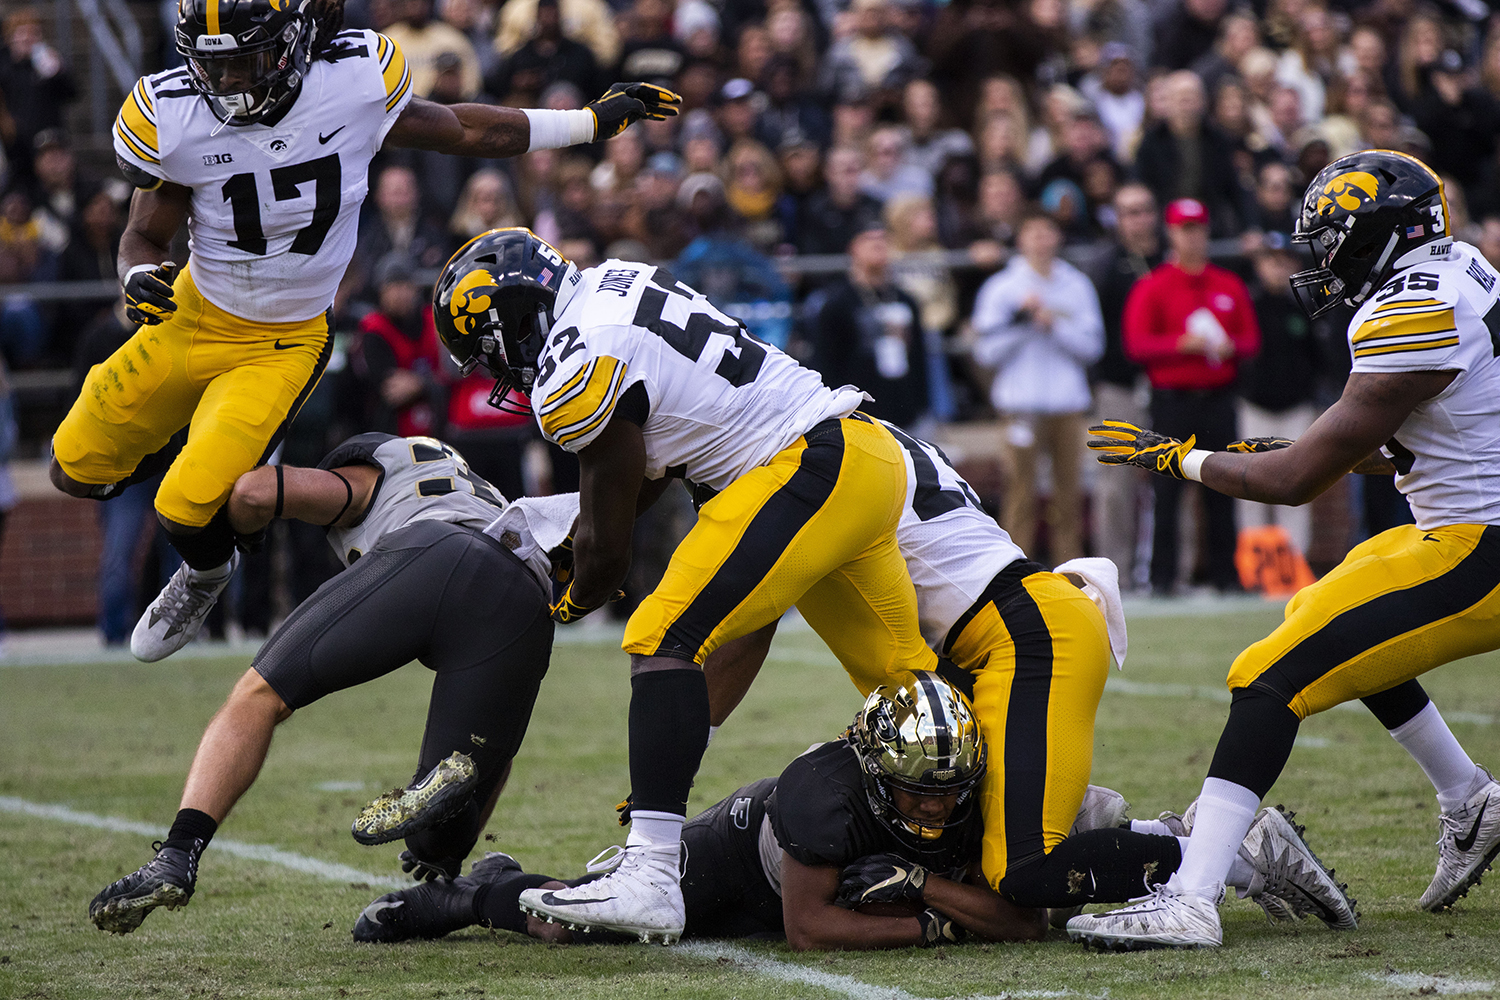 A+Purdue+player+is+bombarded+by+Iowa+defense+during+the+Iowa%2FPurdue+game+at+Ross-Ade+Stadium+in+West+Lafayette%2C+Ind.+The+Boilermakers+defeated+the+Hawkeyes%2C+38-36%2C+with+a+last+second+field+goal.+